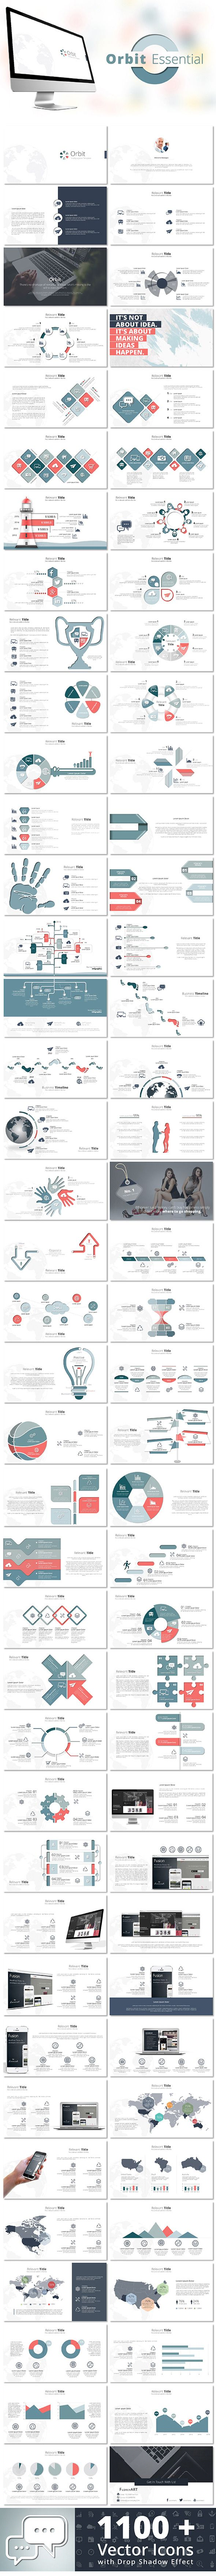 Orbit Essential Keynote Template #design #slides Download: http://graphicriver.net/item/orbit-essential-keynote-template/13233581?ref=ksioks